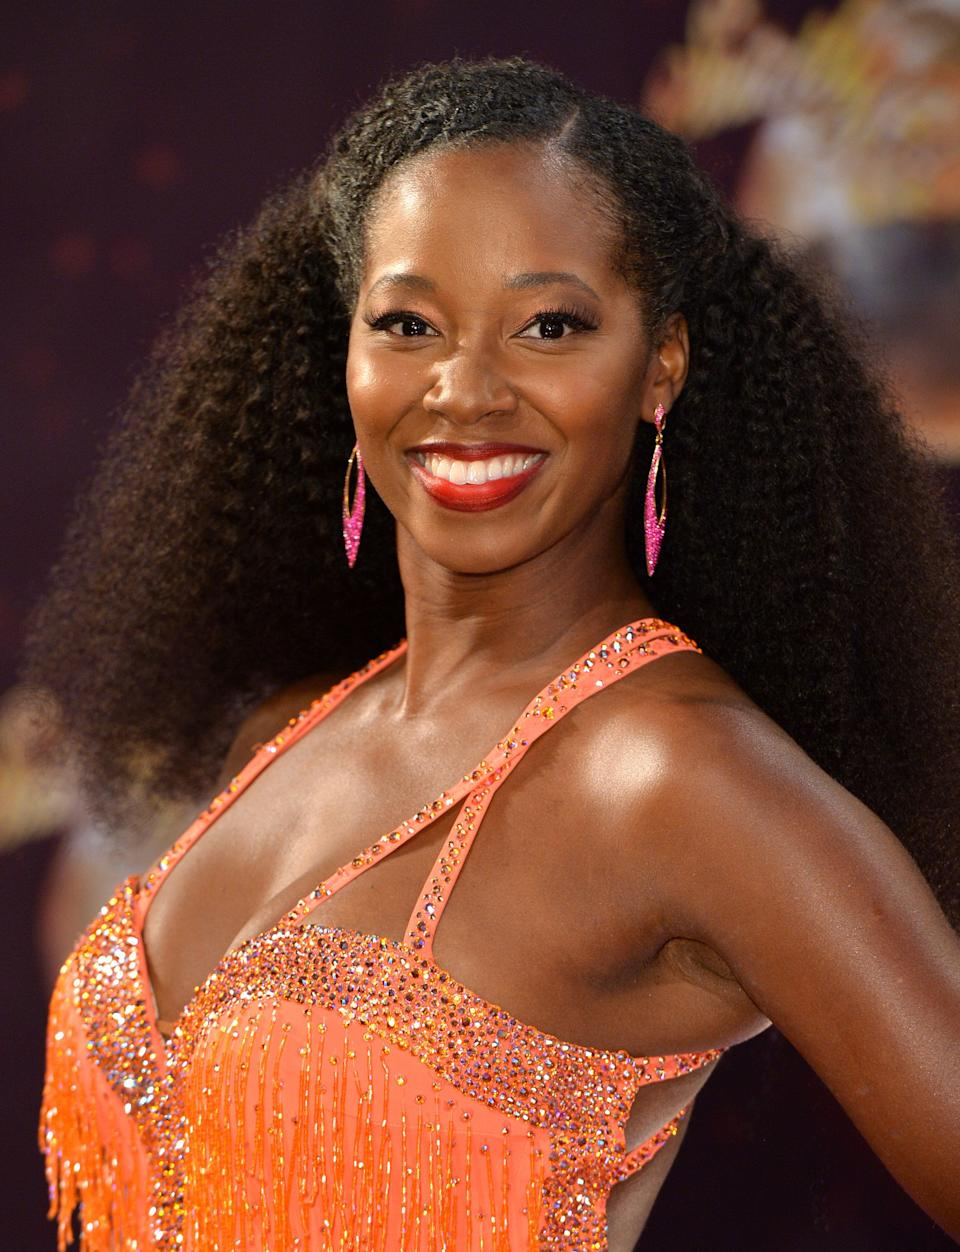 """After landing herself in a record five dance-offs, Jamelia made the rather surprising move of accusing the show of favouring Peter Andre, when she lost out to him in 2015.<br /><br />On Loose Women that week, she said: """"It wasn't until they re-recorded Pete's standing ovation, I'd say that was the moment we knew we were going home.""""<br /><br />Like Maleficent at a christening, James Jordan also offered his take, suggesting Peter was being given an unfair advantage by opening or closing the show each week."""